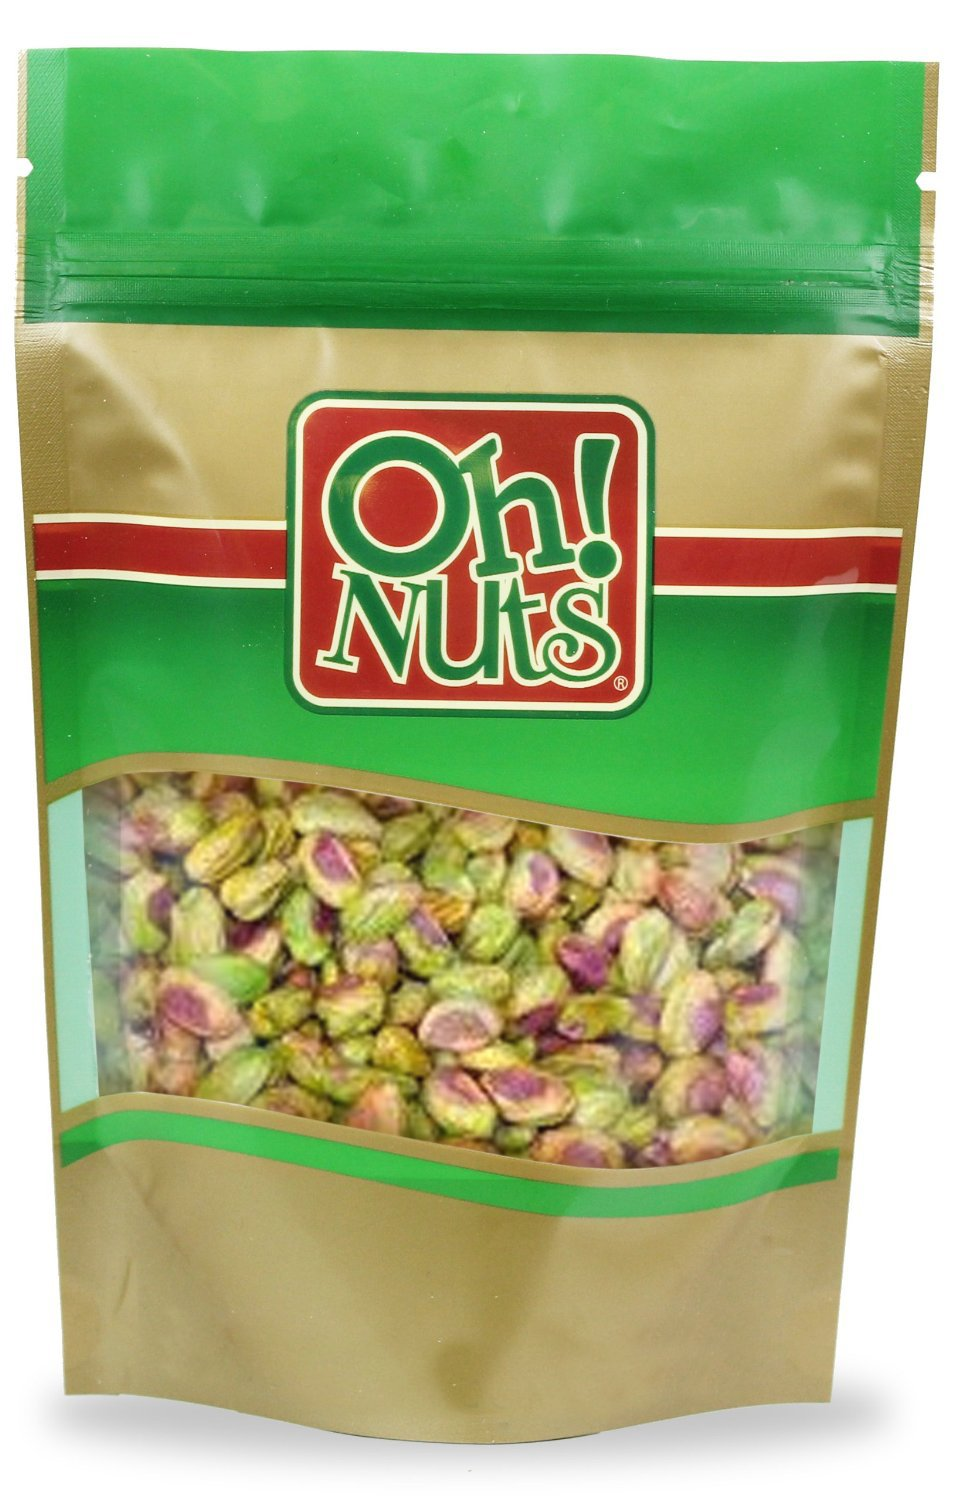 Shelled Raw Pistachios (5 Pound Bag) - Oh! Nuts